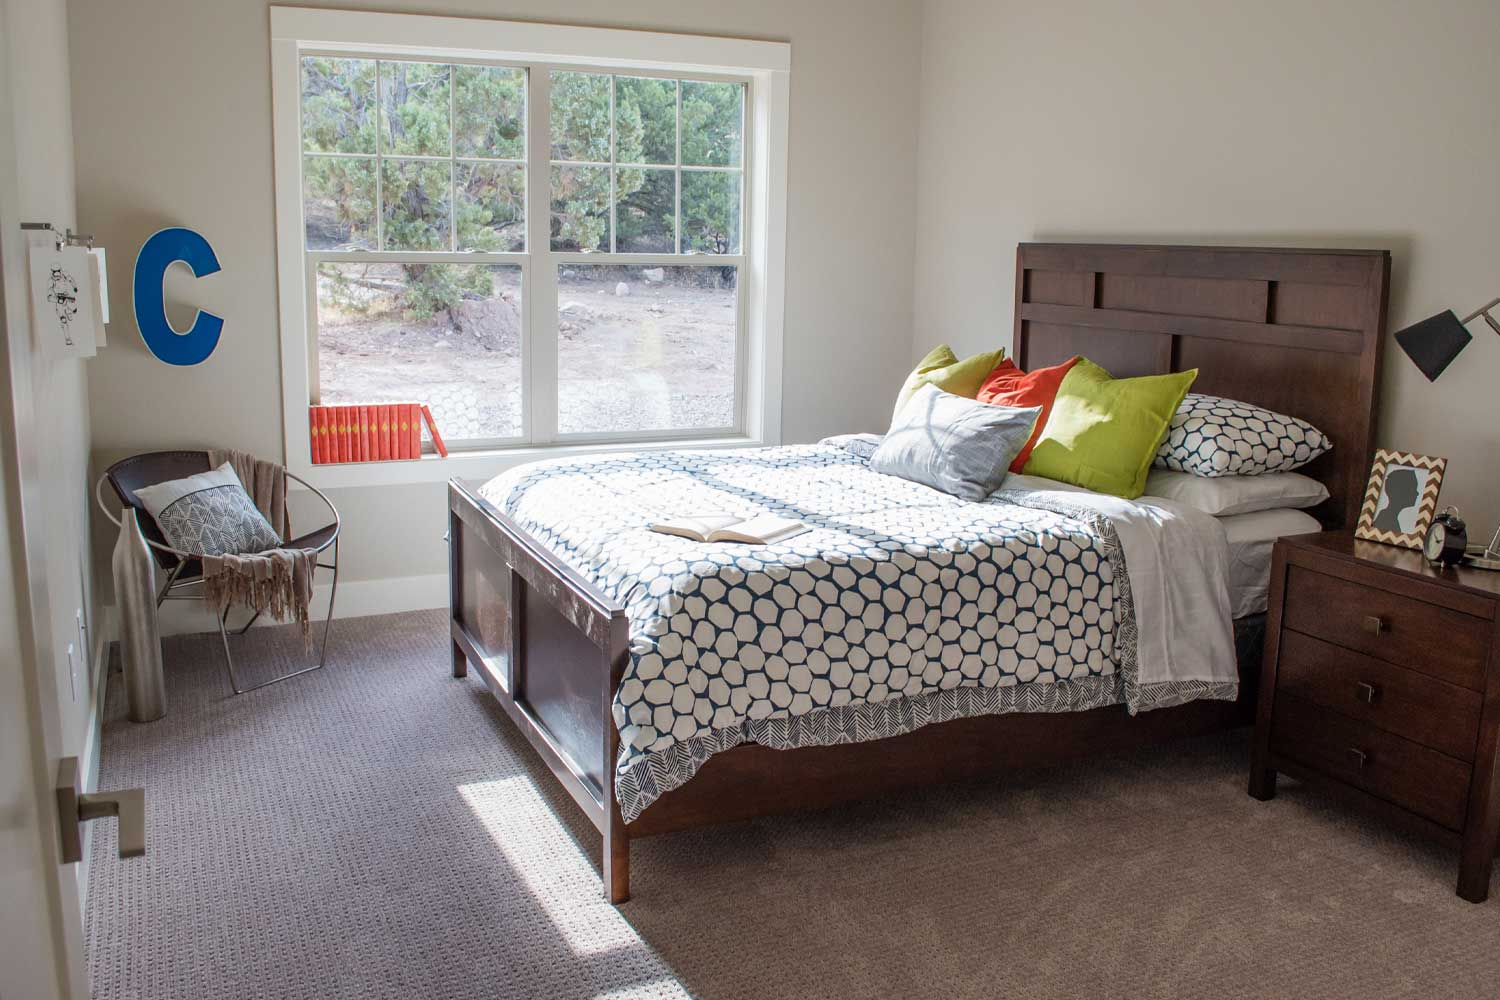 spare room with one queen size bed, dark wood bedframe, bright natural light come from main window that looks out into backyard